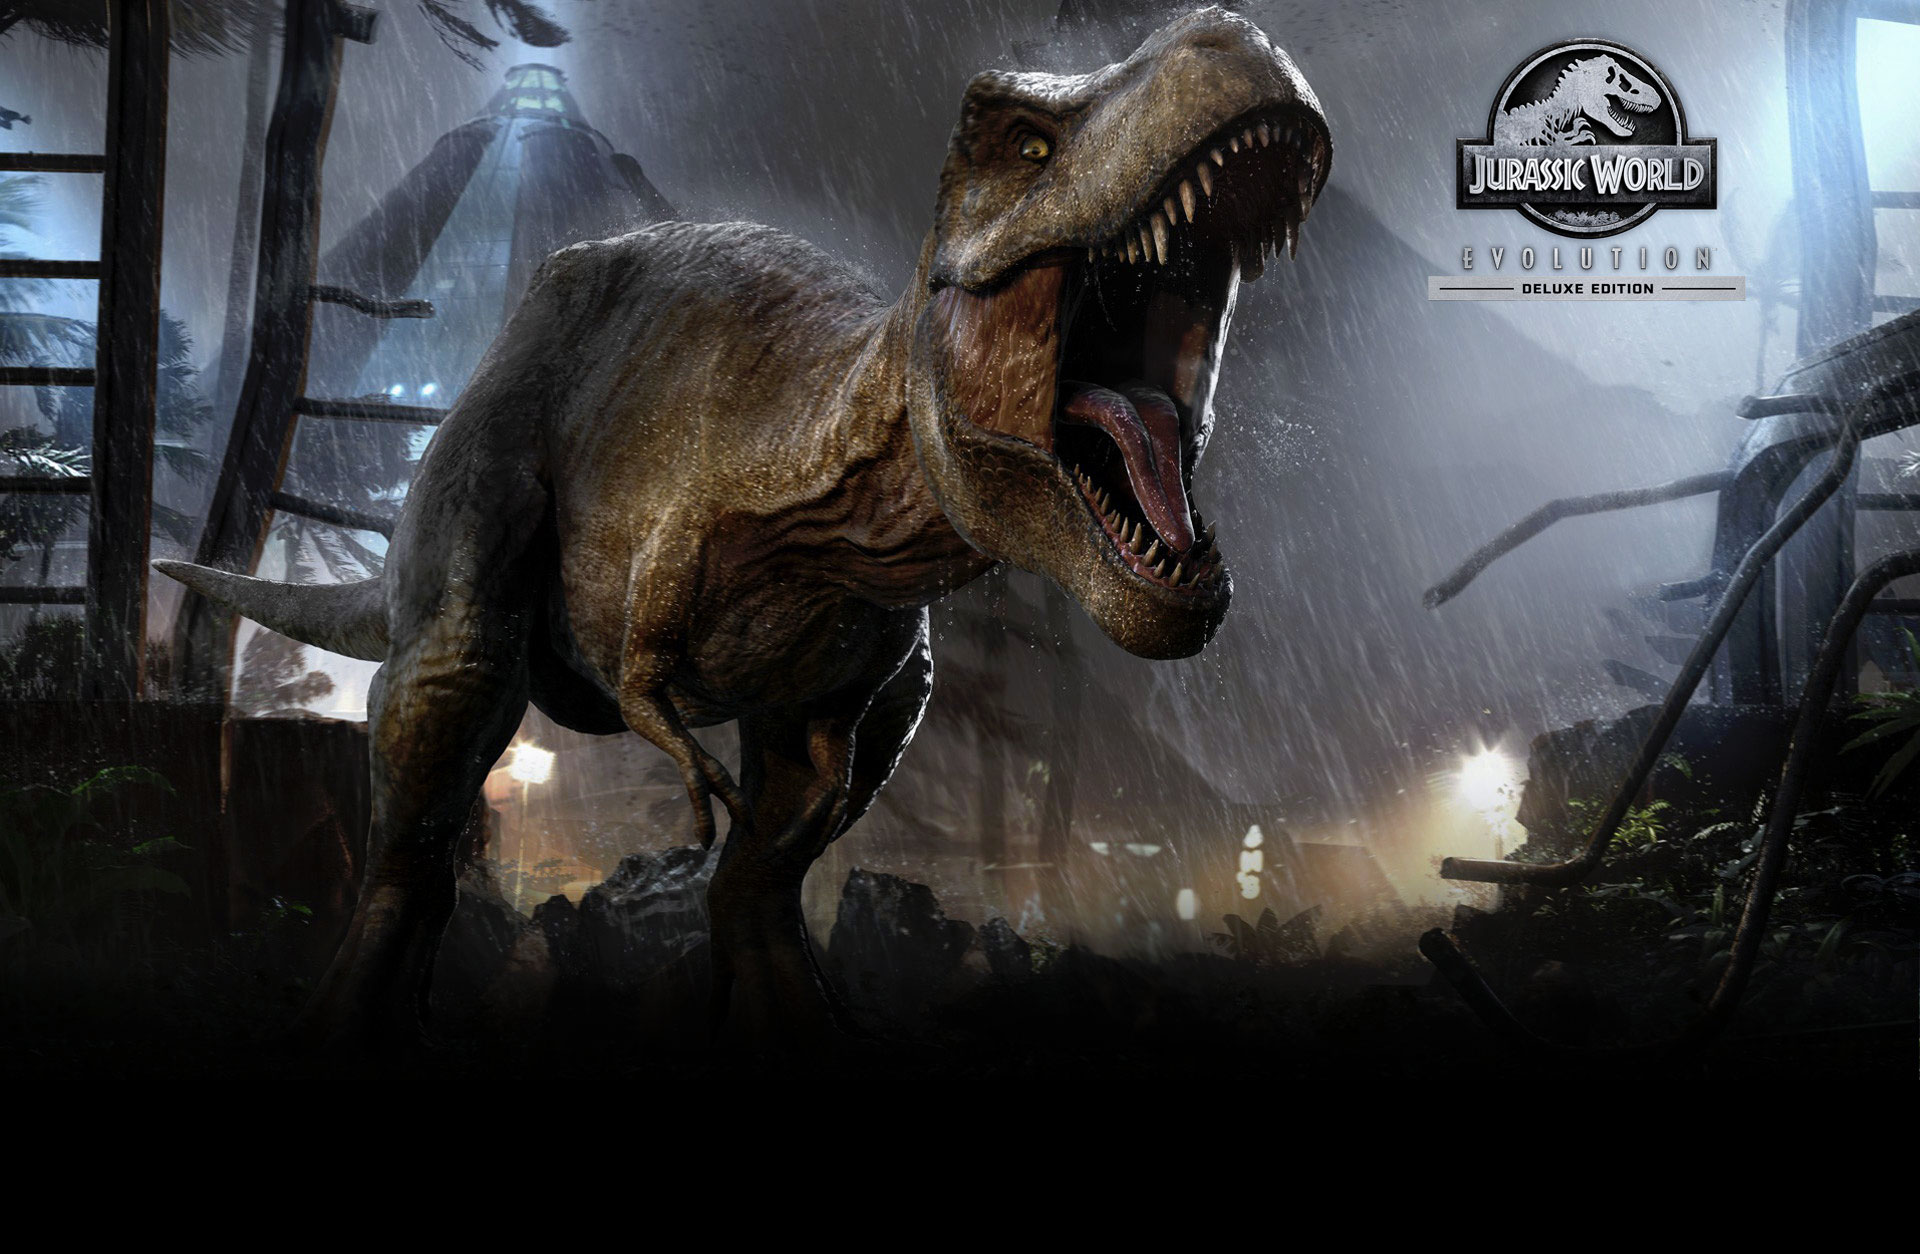 Jurassic World Evolution Deluxe